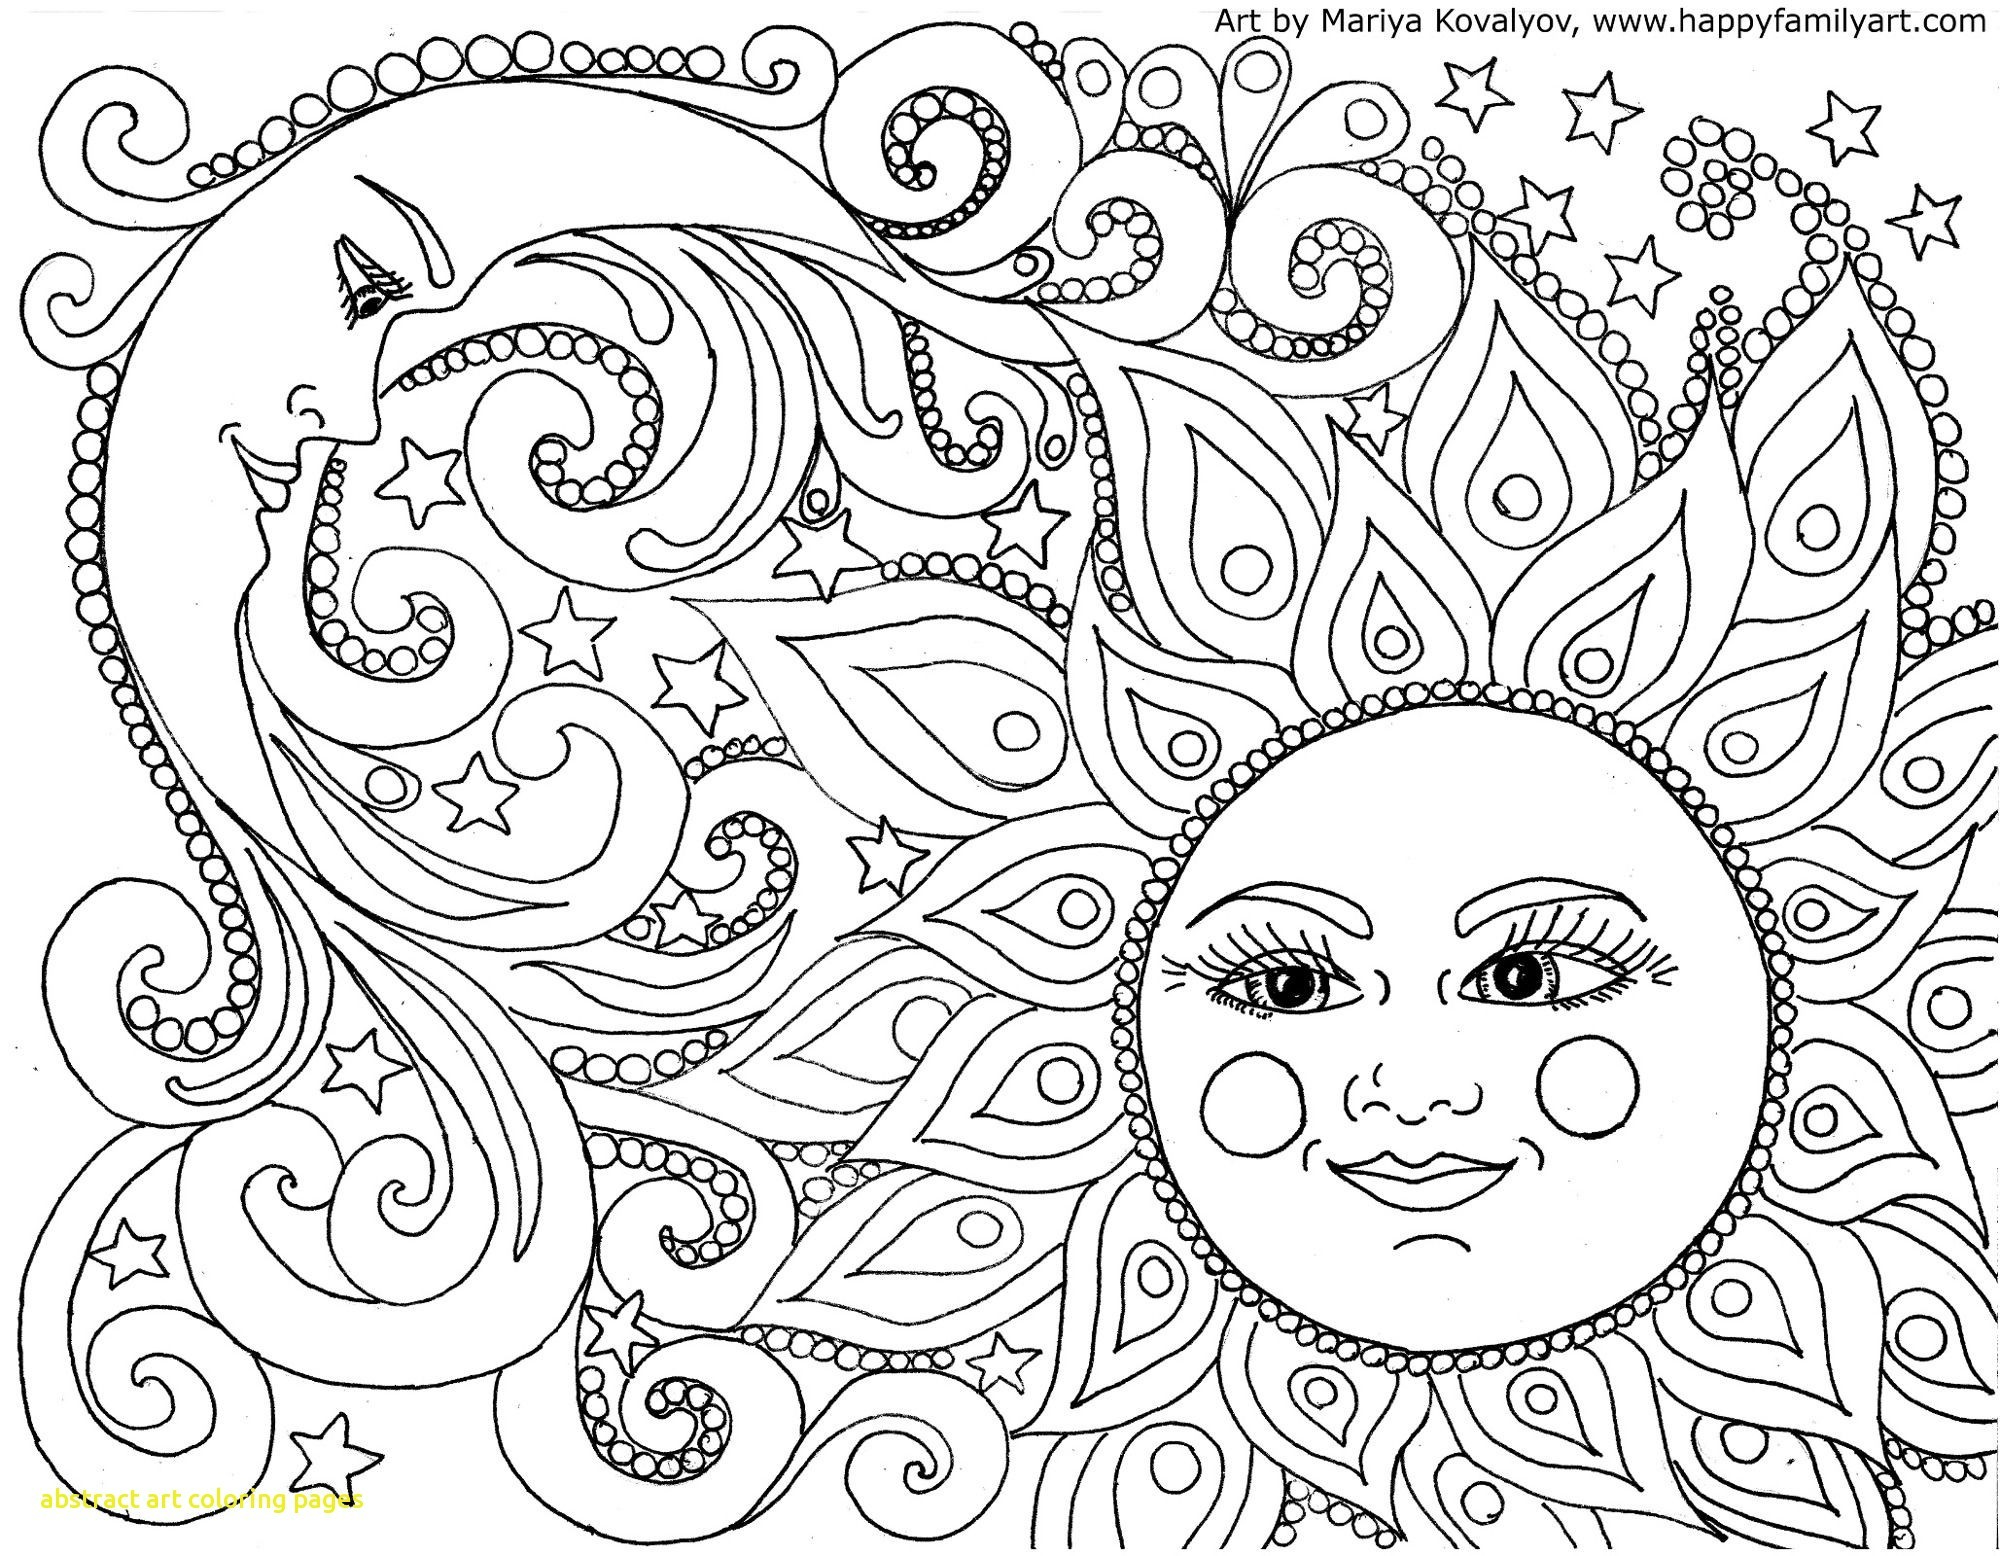 2000x1556 Abstract Art Coloring Pages For Adults Copy Abstract Art Coloring